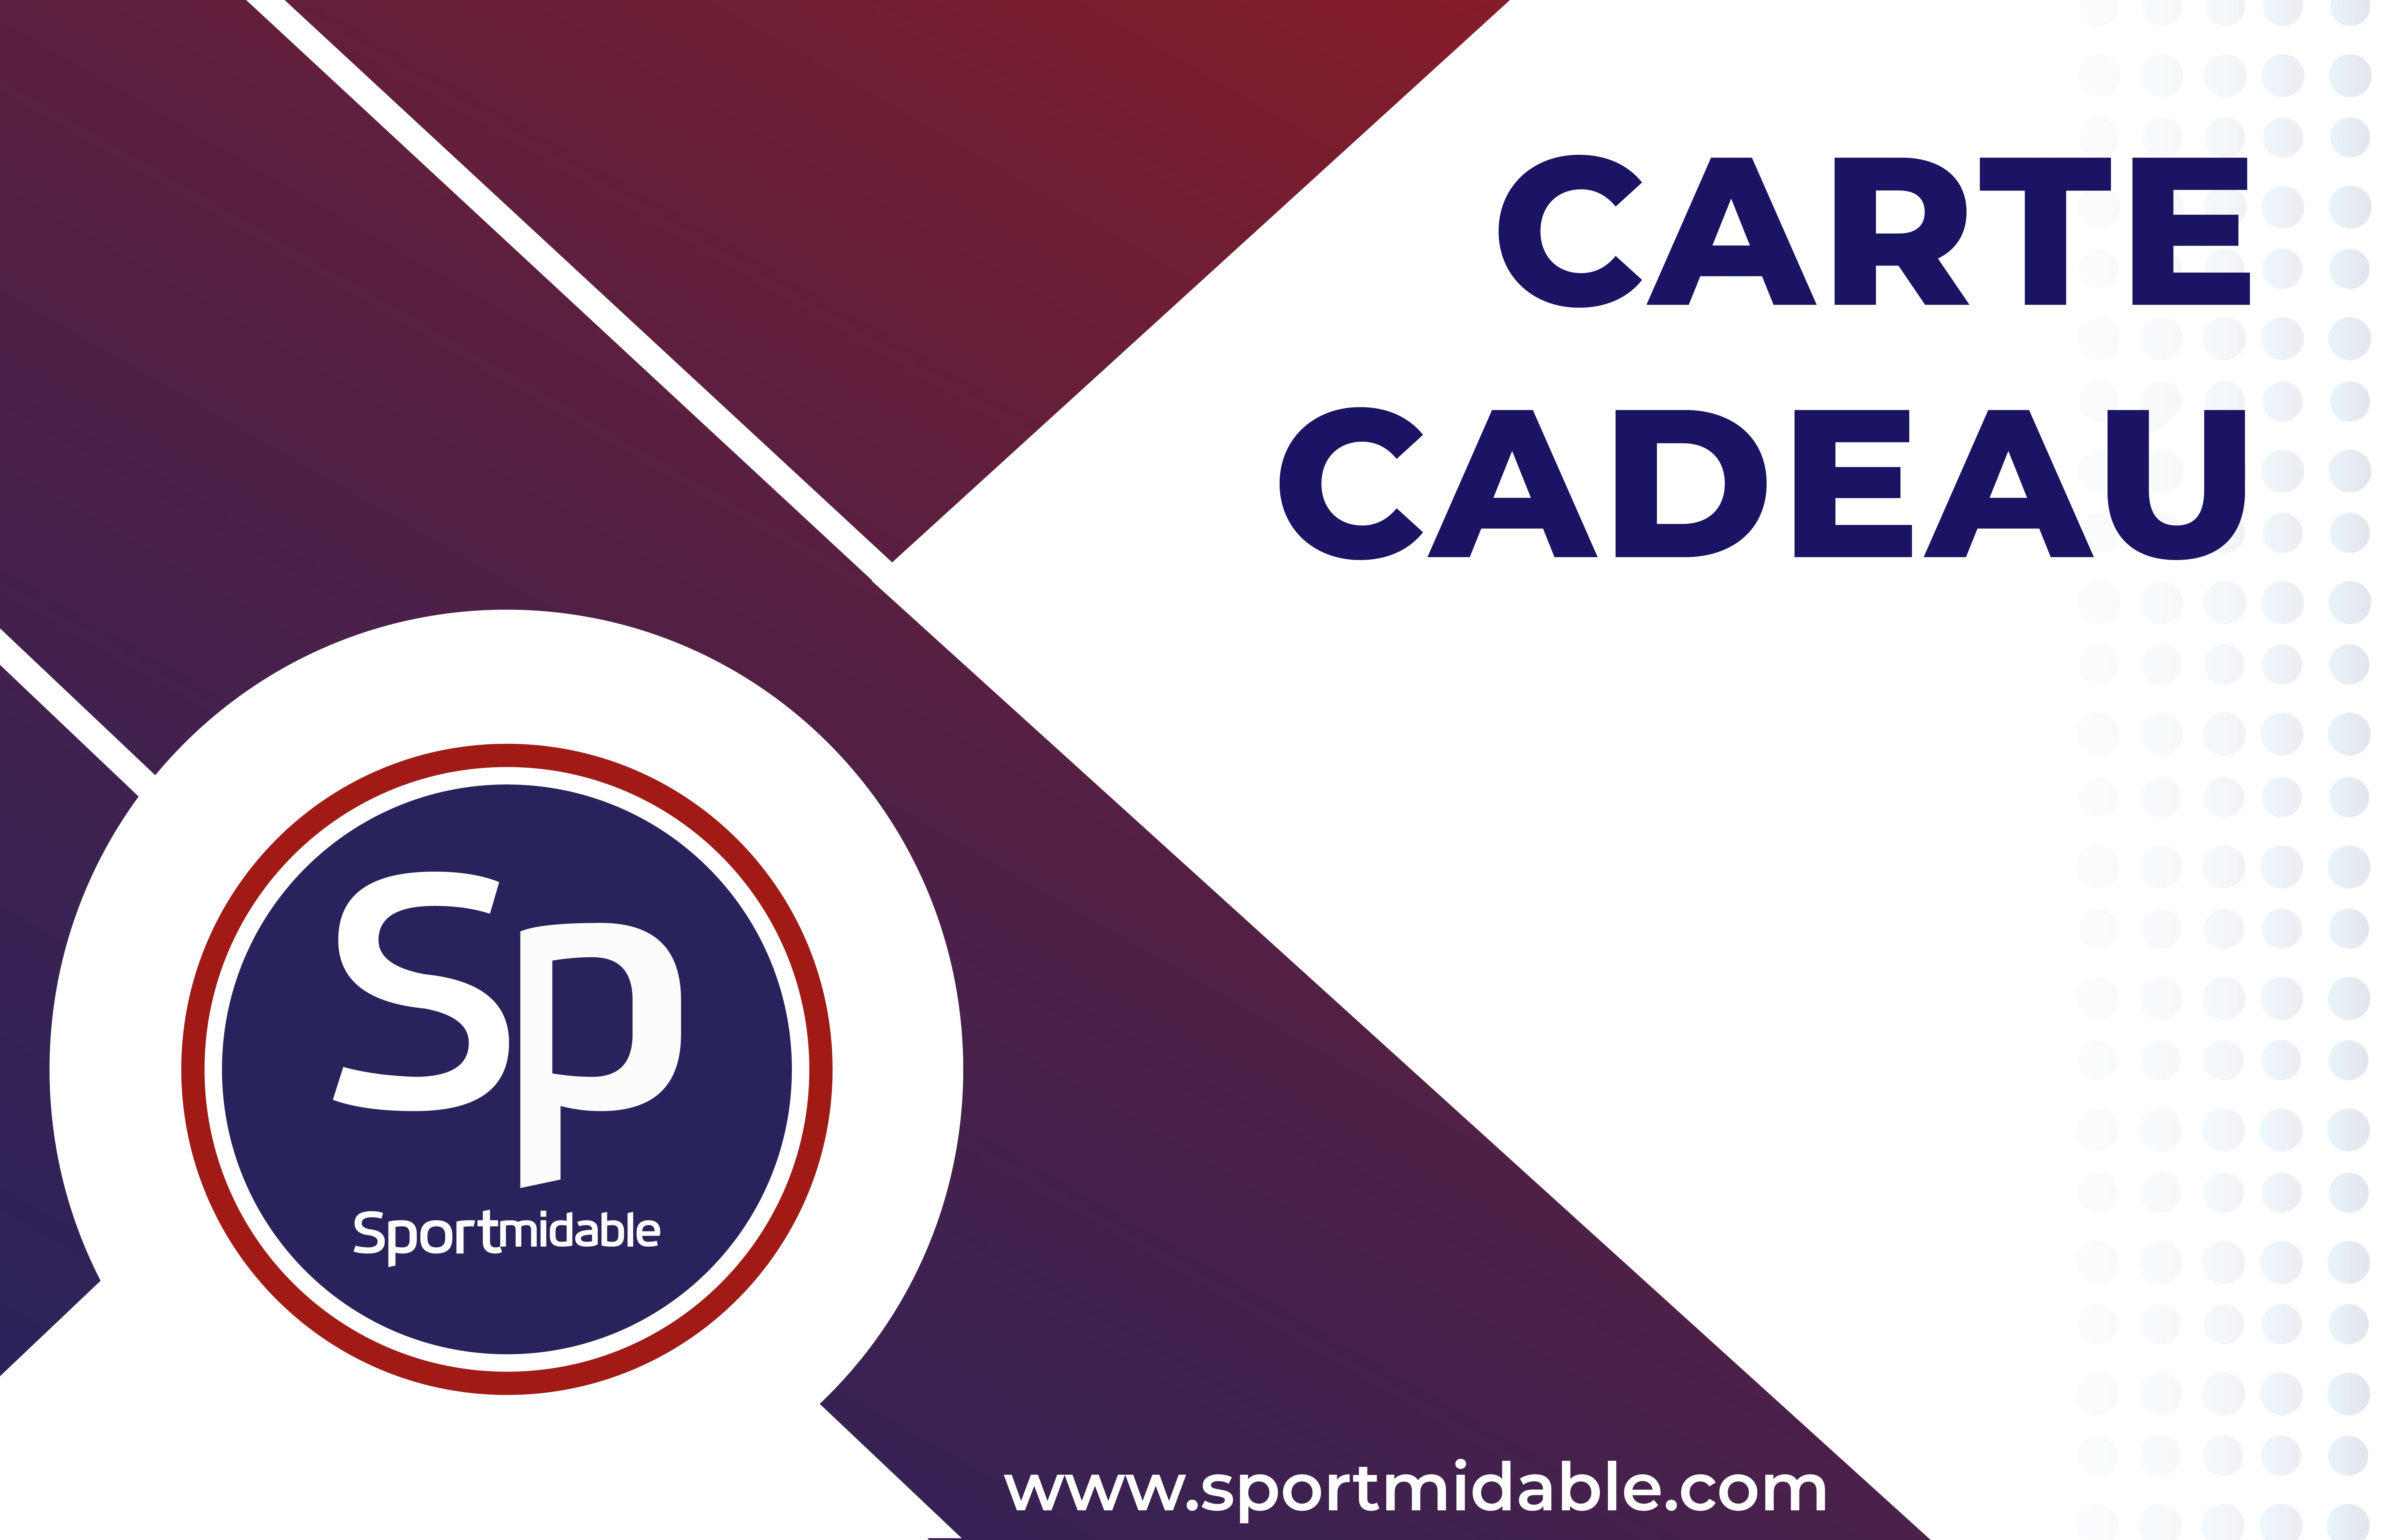 Carte Cadeau Sportmidable